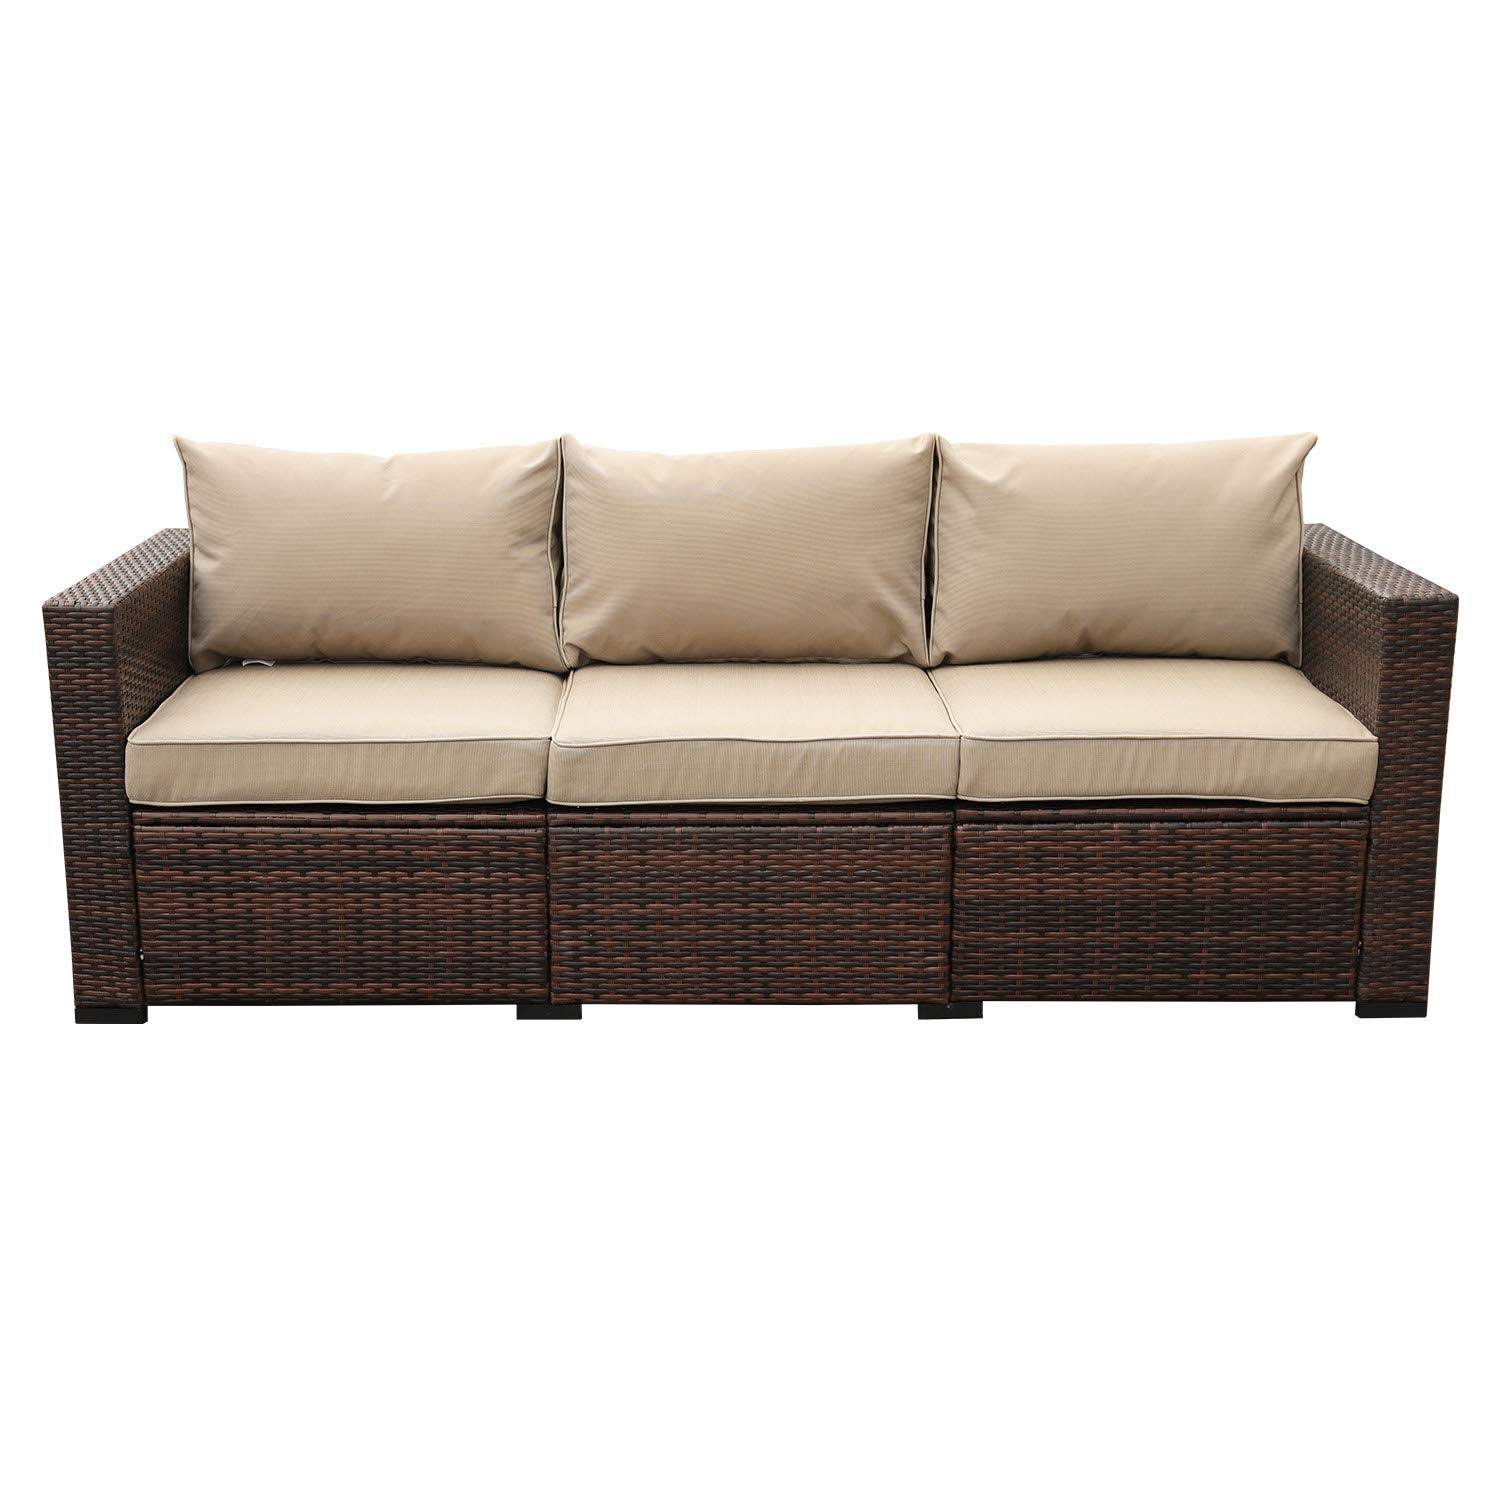 Patio PE Wicker Couch - 3-Seat Outdoor Black Rattan Sofa Seating Furniture  with Beige Cushion